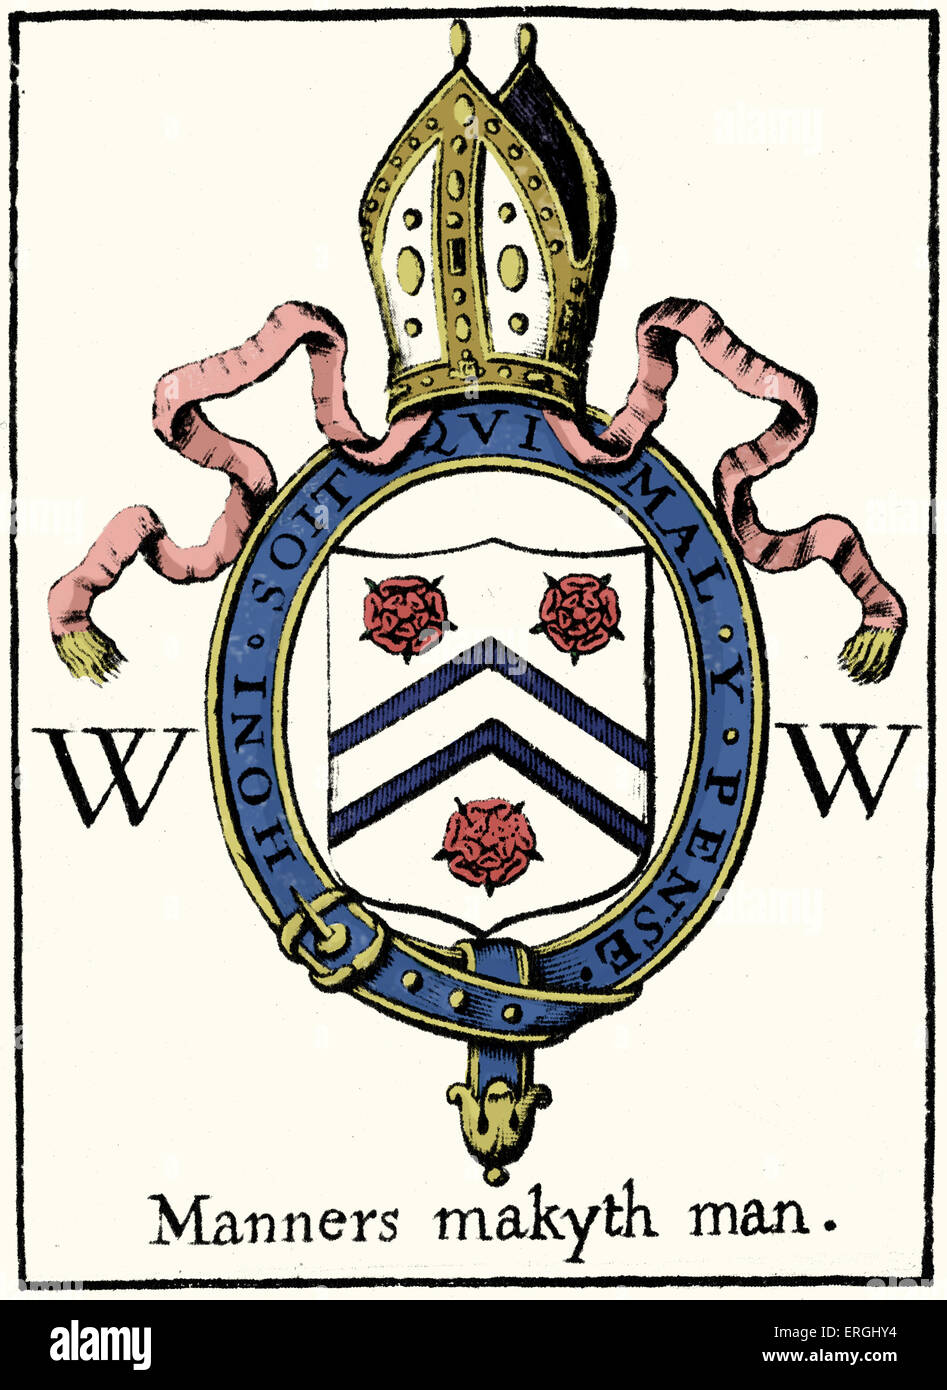 William of Wykeham's crest. Engraving from Prayers for the use of Winchester College, 1677. Author unknown. - Stock Image